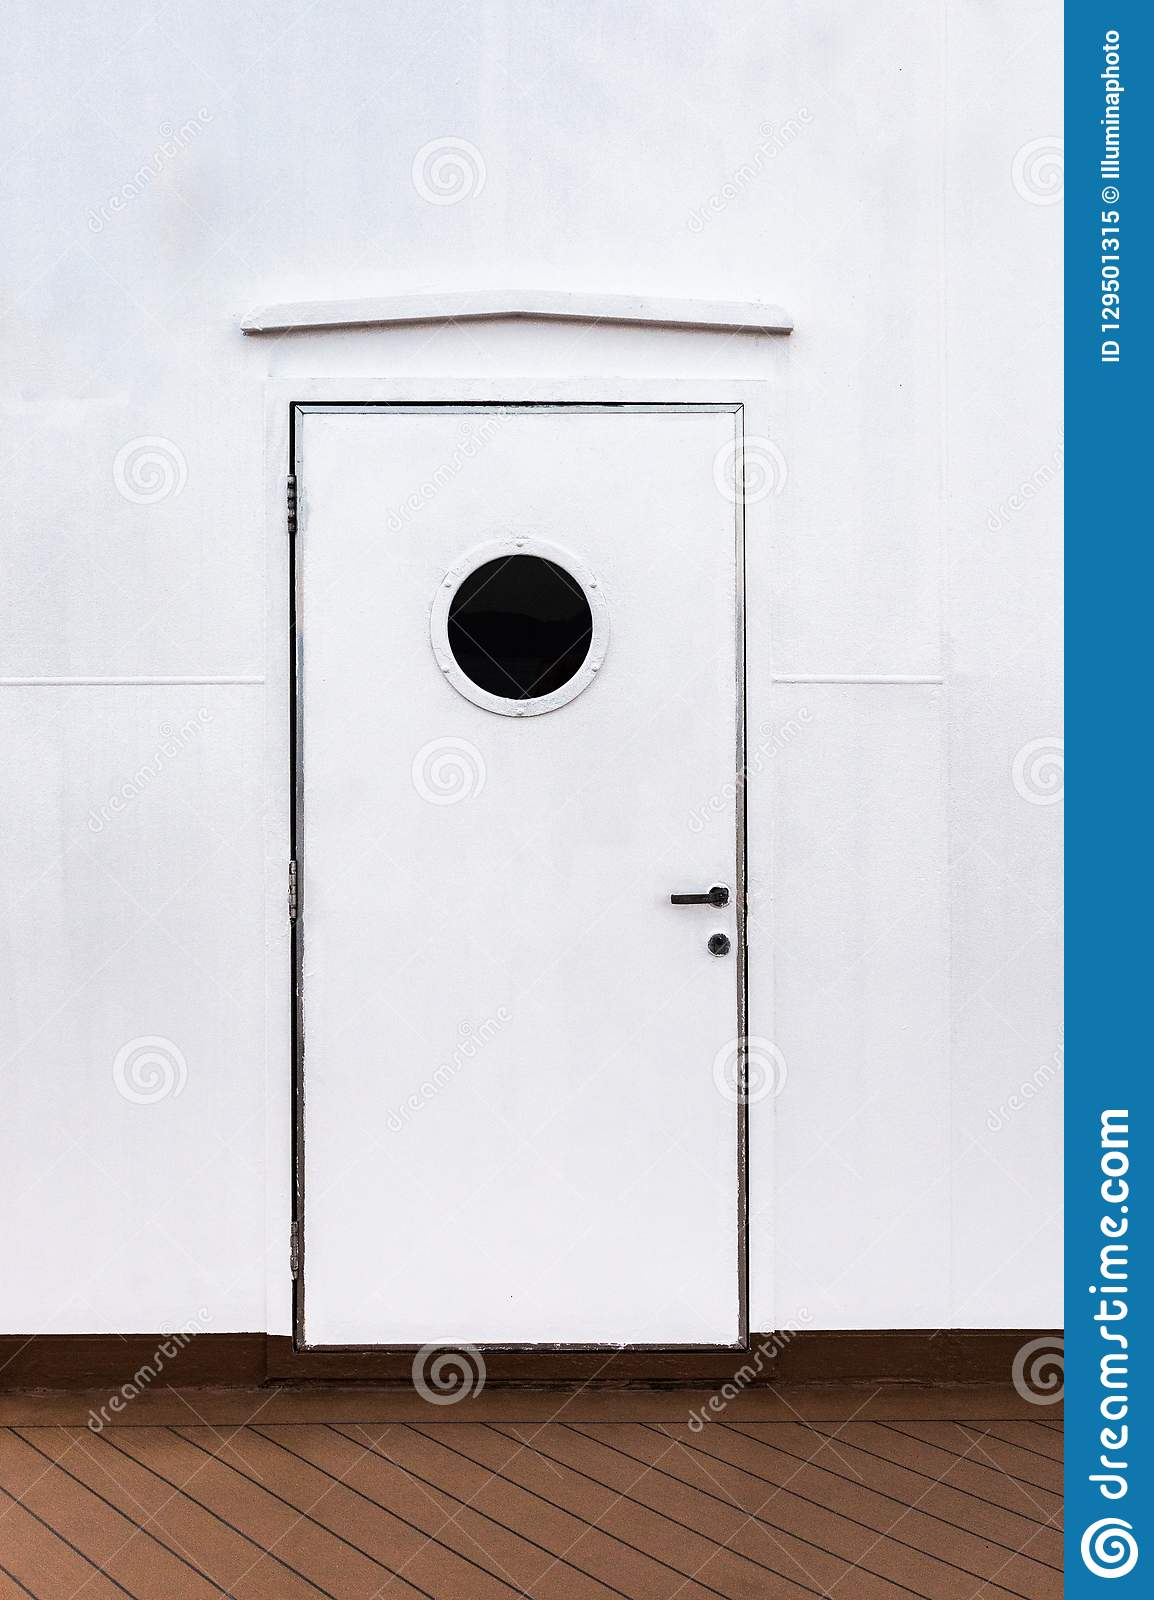 Closed Exterior White Metal Door With Round Window On A